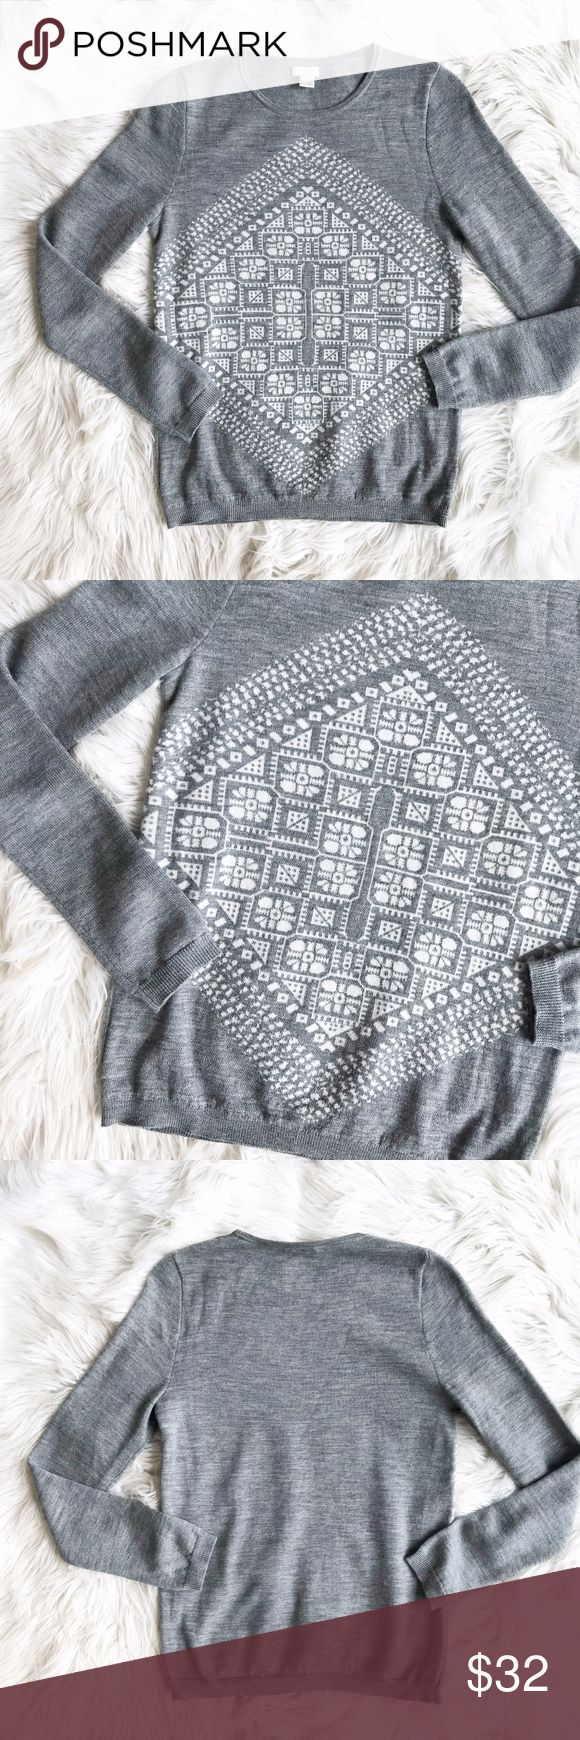 J. Crew Factory Aztec Tribal  Print Sweater Excellent condition J. Crew Factory Aztec Print Sweater. Very soft with Aztec print motif on front. Size XS. No trades, offers welcome. J. Crew Factory Sweaters Crew & Scoop Necks